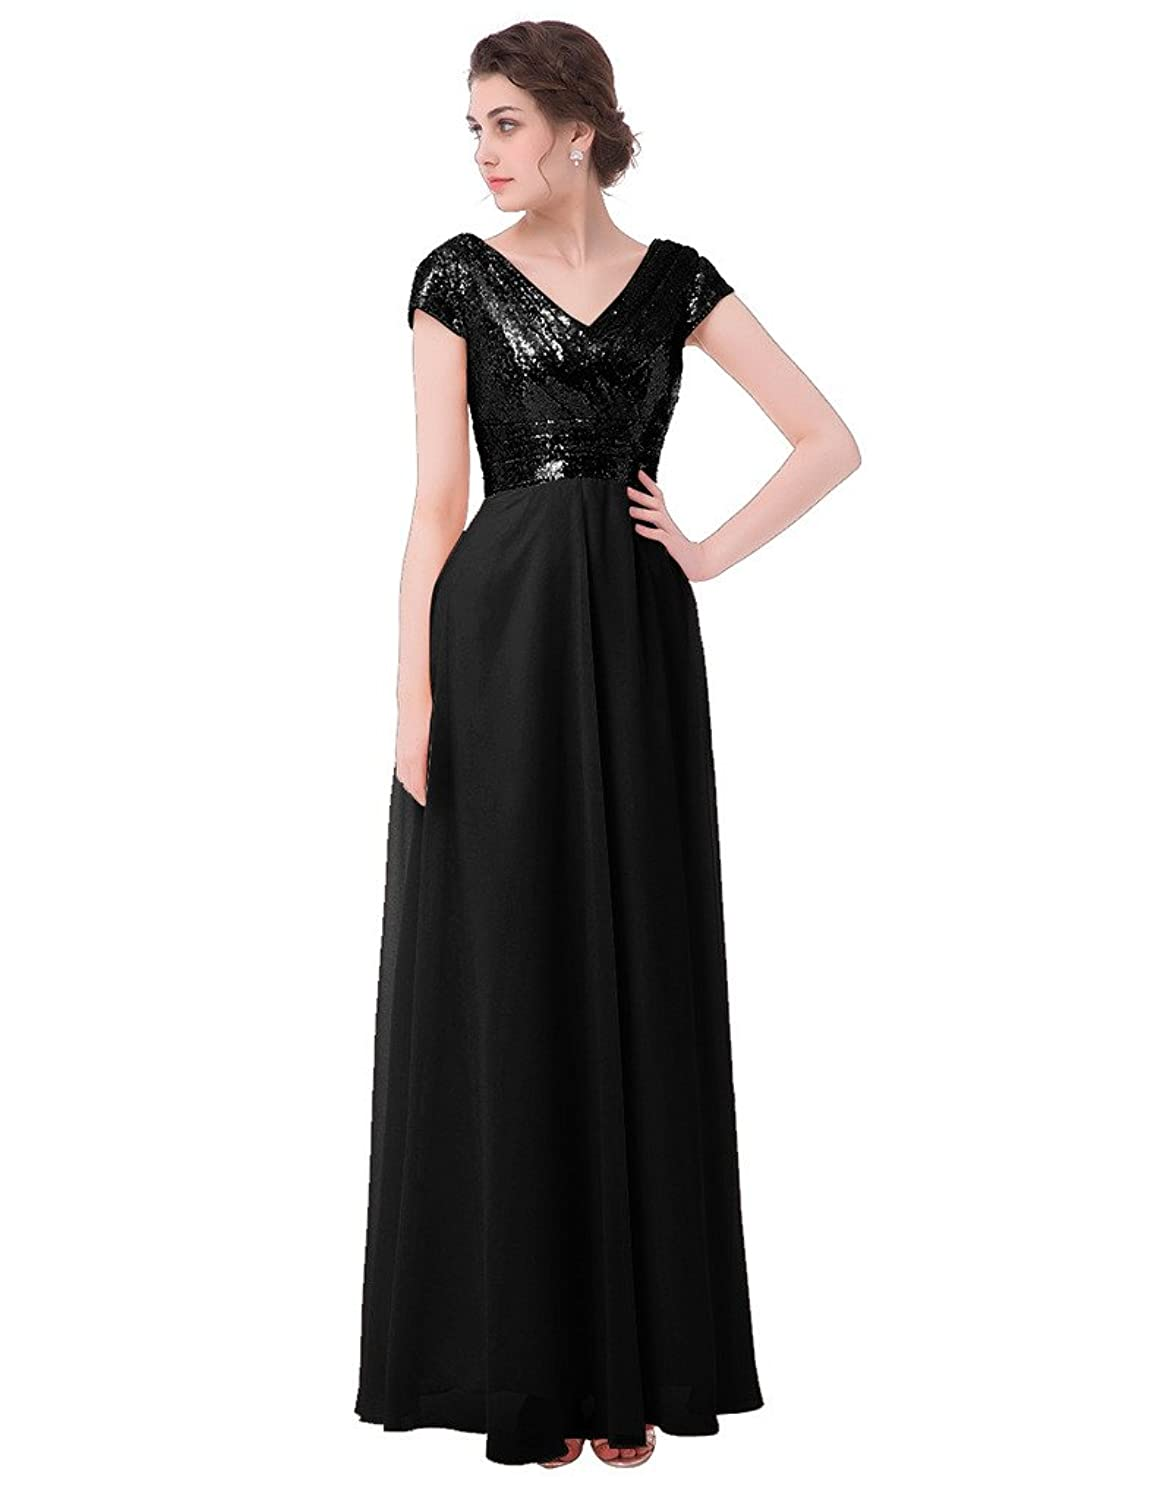 Macloth cap sleeve v neck sequin chiffon bridesmaid dress formal dressyu cap sleeve sequin long prom party dress bridesmaid gowns ombrellifo Images